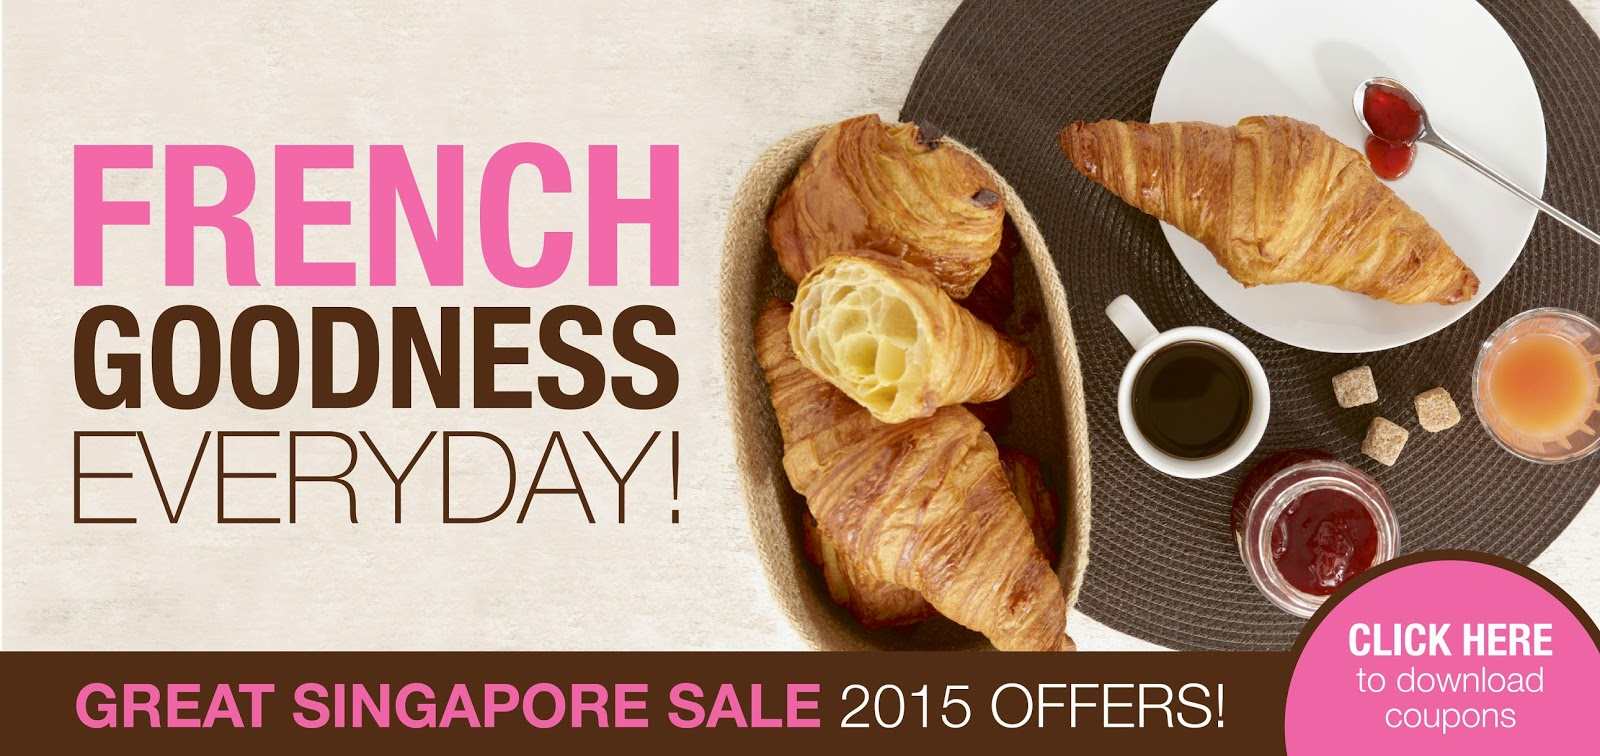 Foodiefc Delifrance Great Singapore Sale 1 For 1